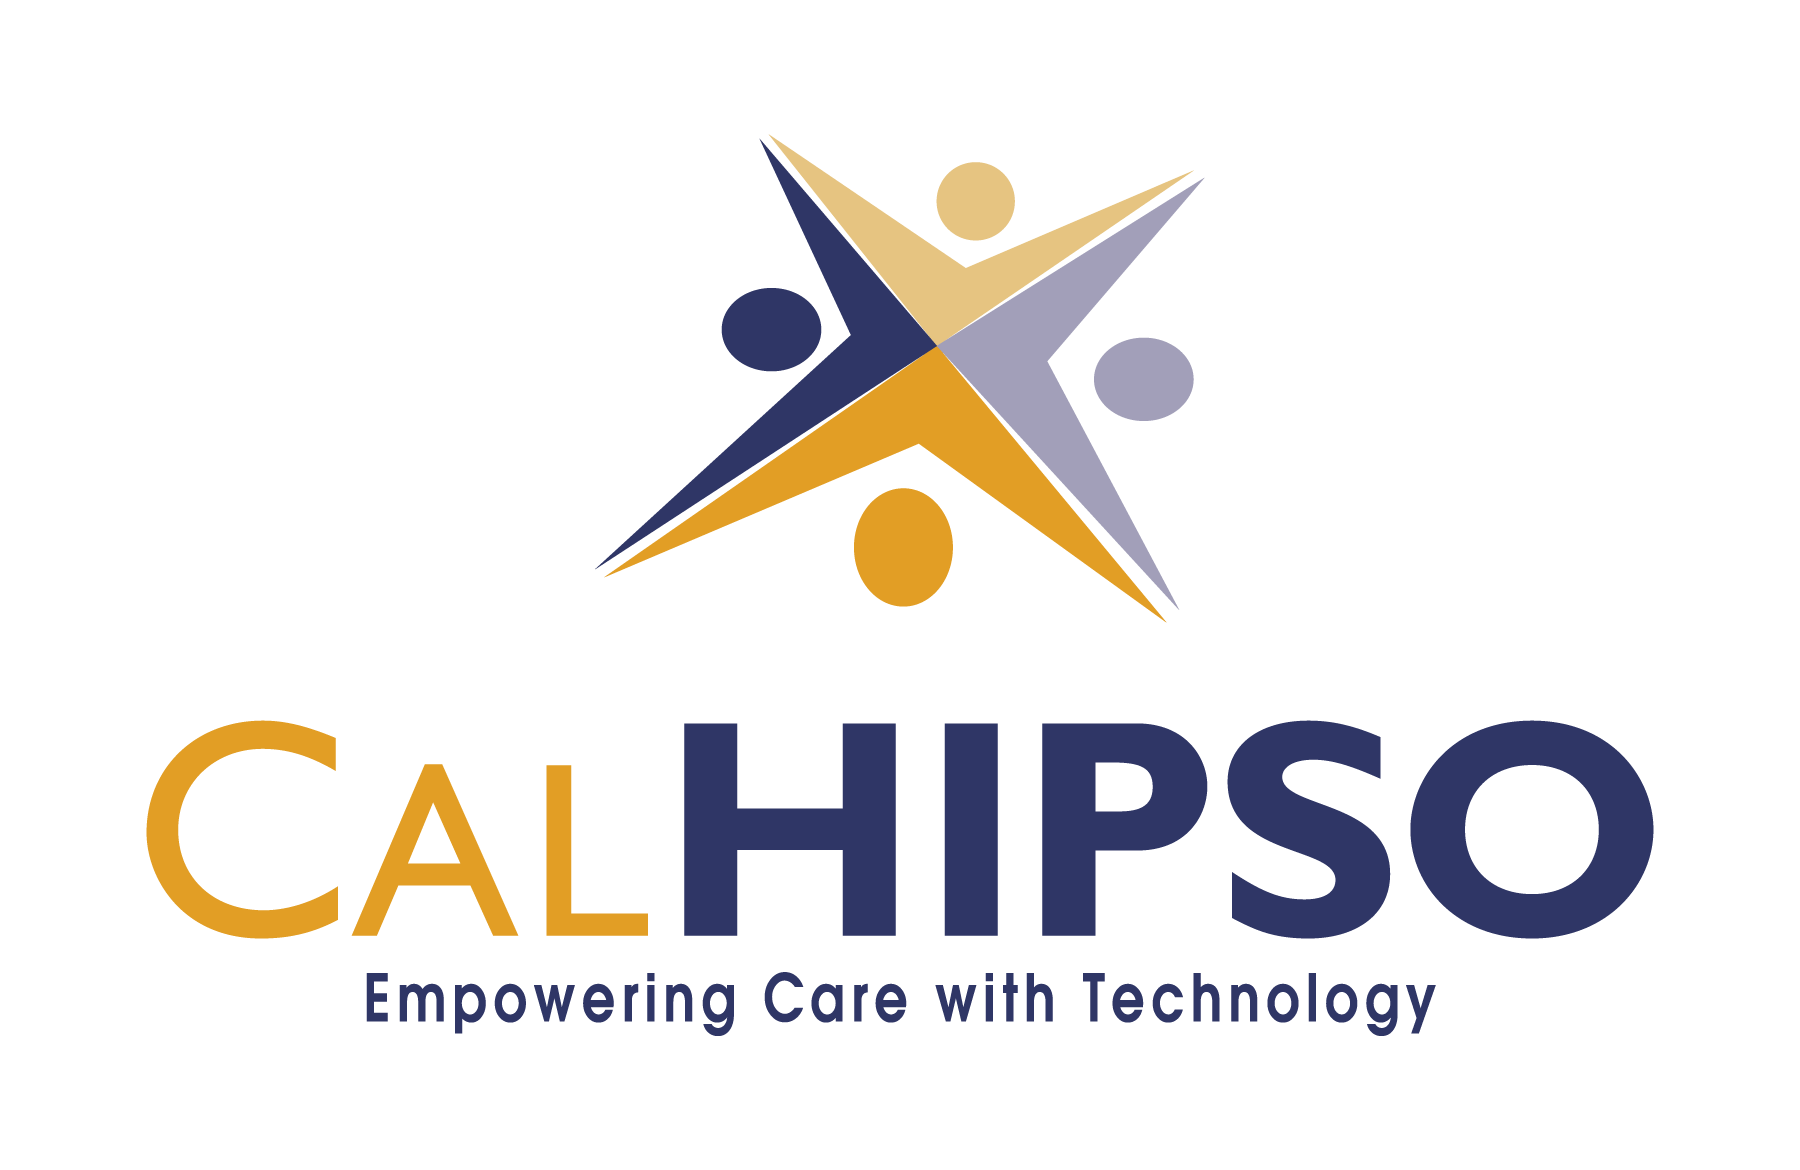 CalHIPSO: Empowering Care With Technology logo